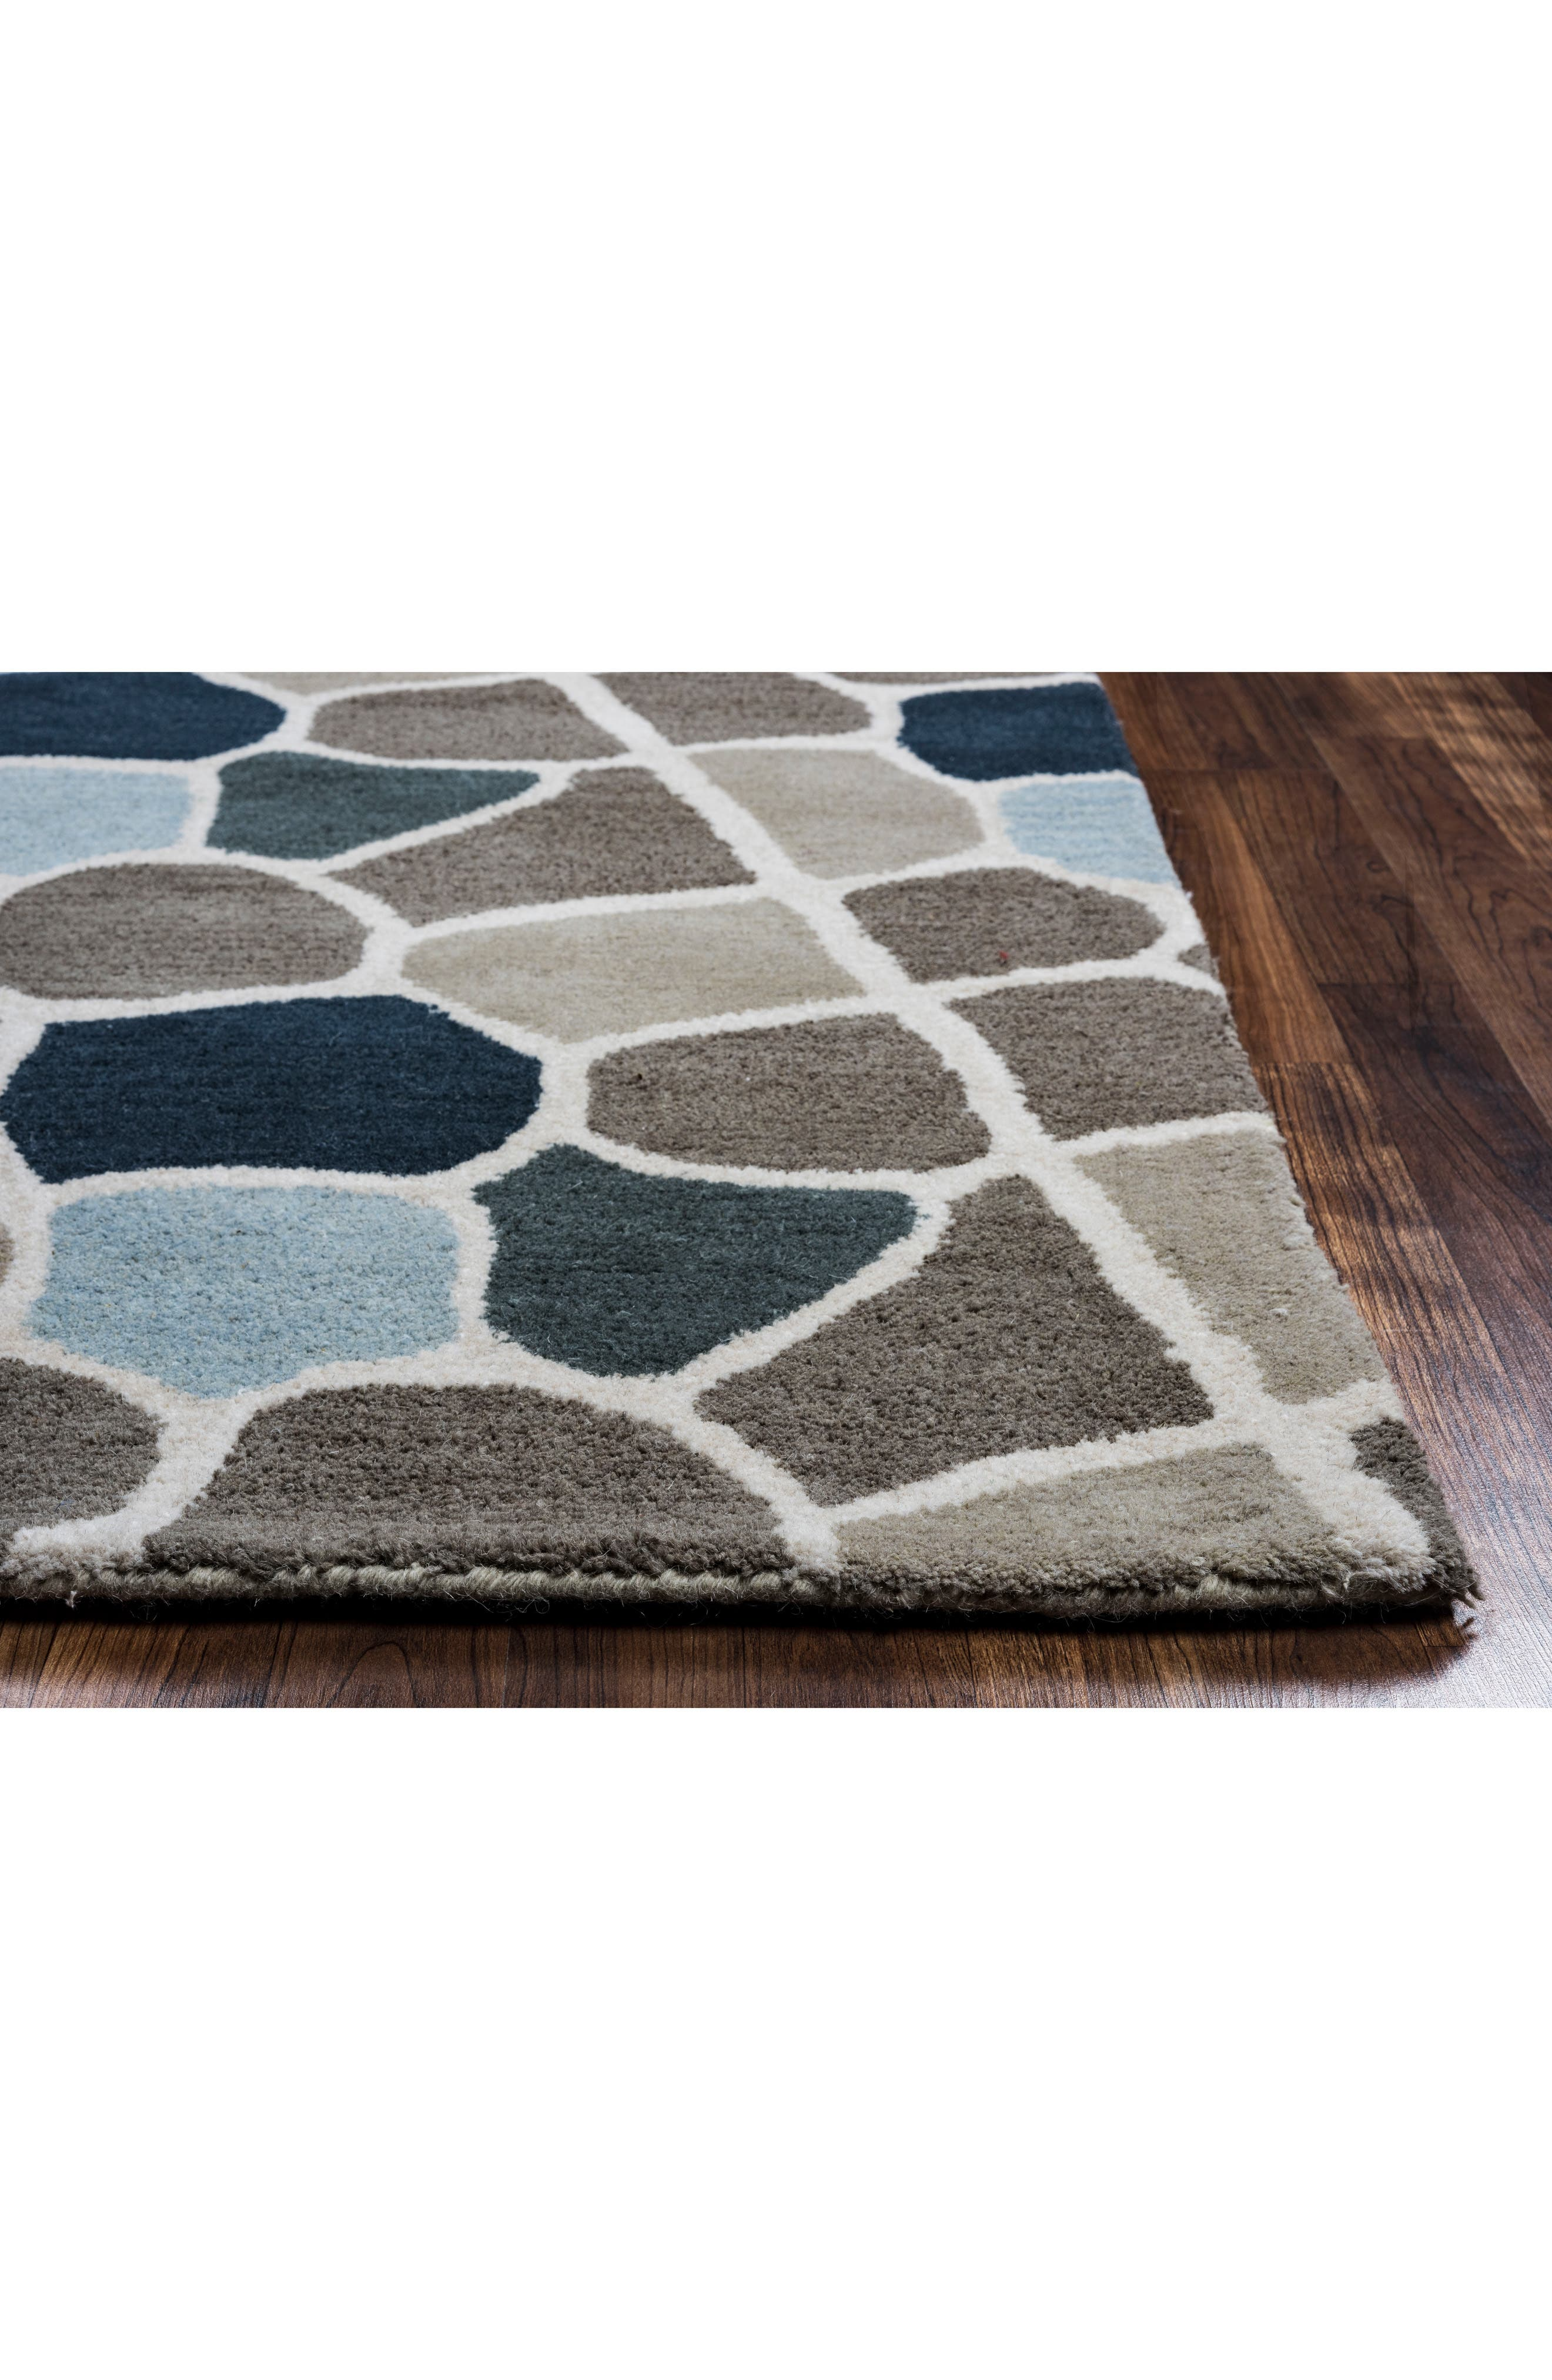 Cobble Geo Hand Tufted Wool Area Rug,                             Alternate thumbnail 2, color,                             Grey/ Blue